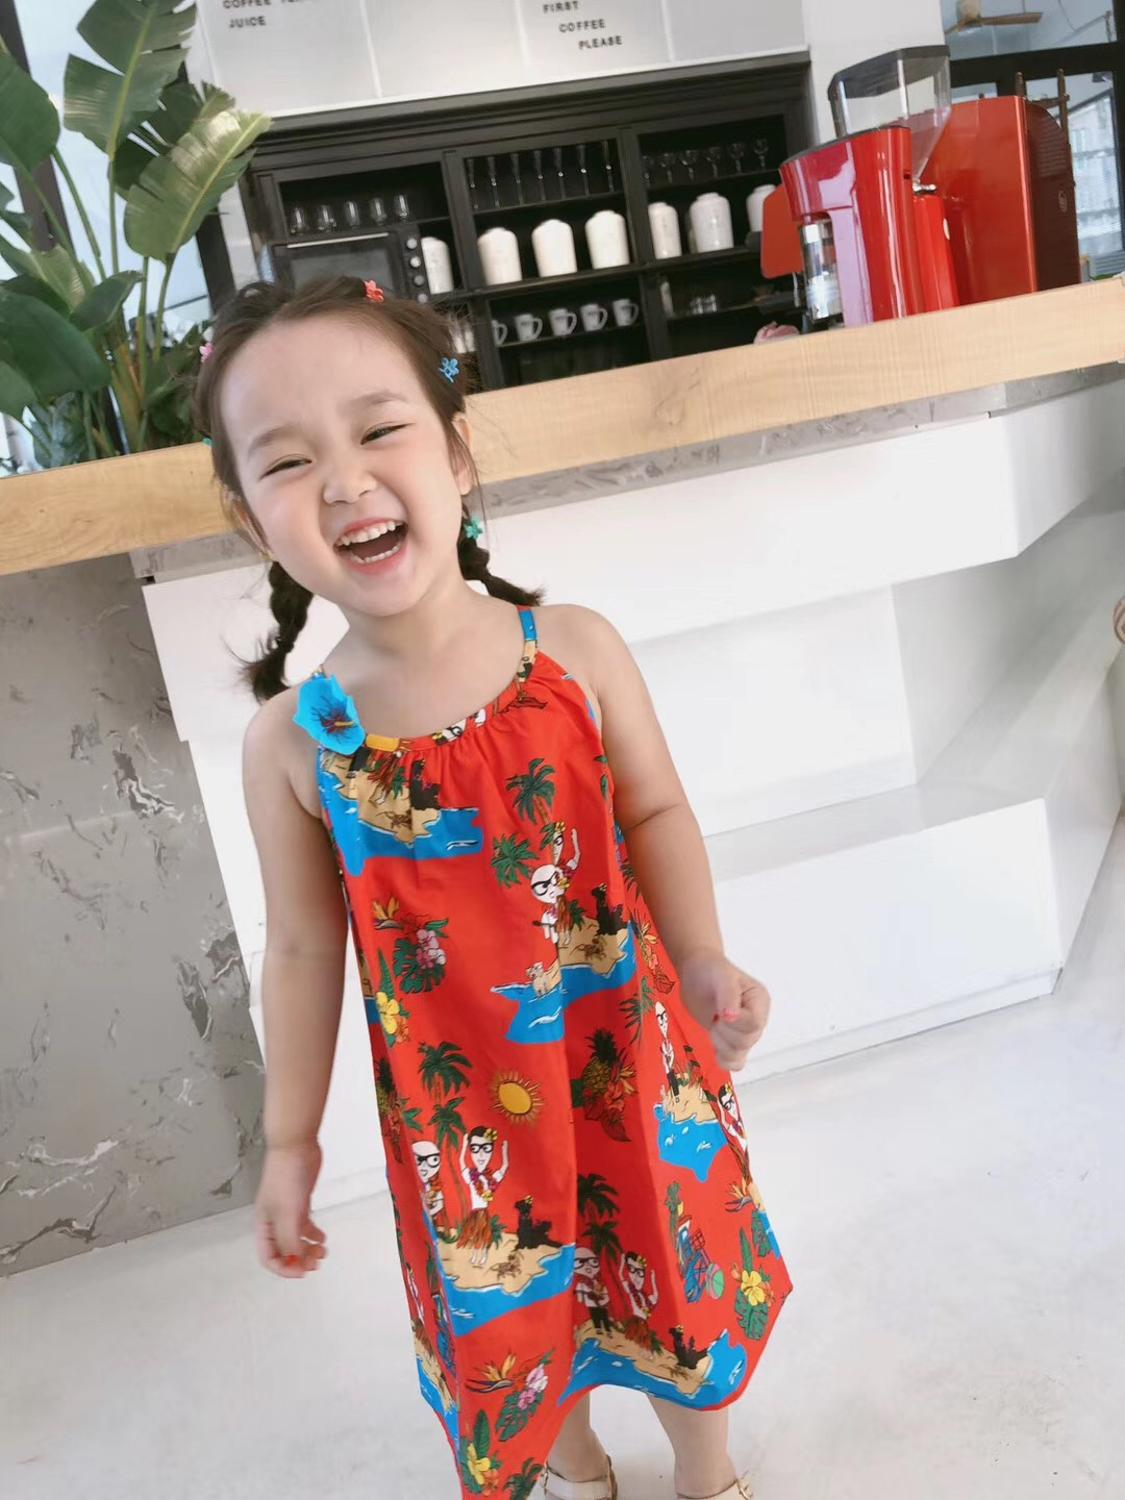 baby dress floral character pattern girls dress toddler summer kids dresses holiday clothesbaby dress floral character pattern girls dress toddler summer kids dresses holiday clothes